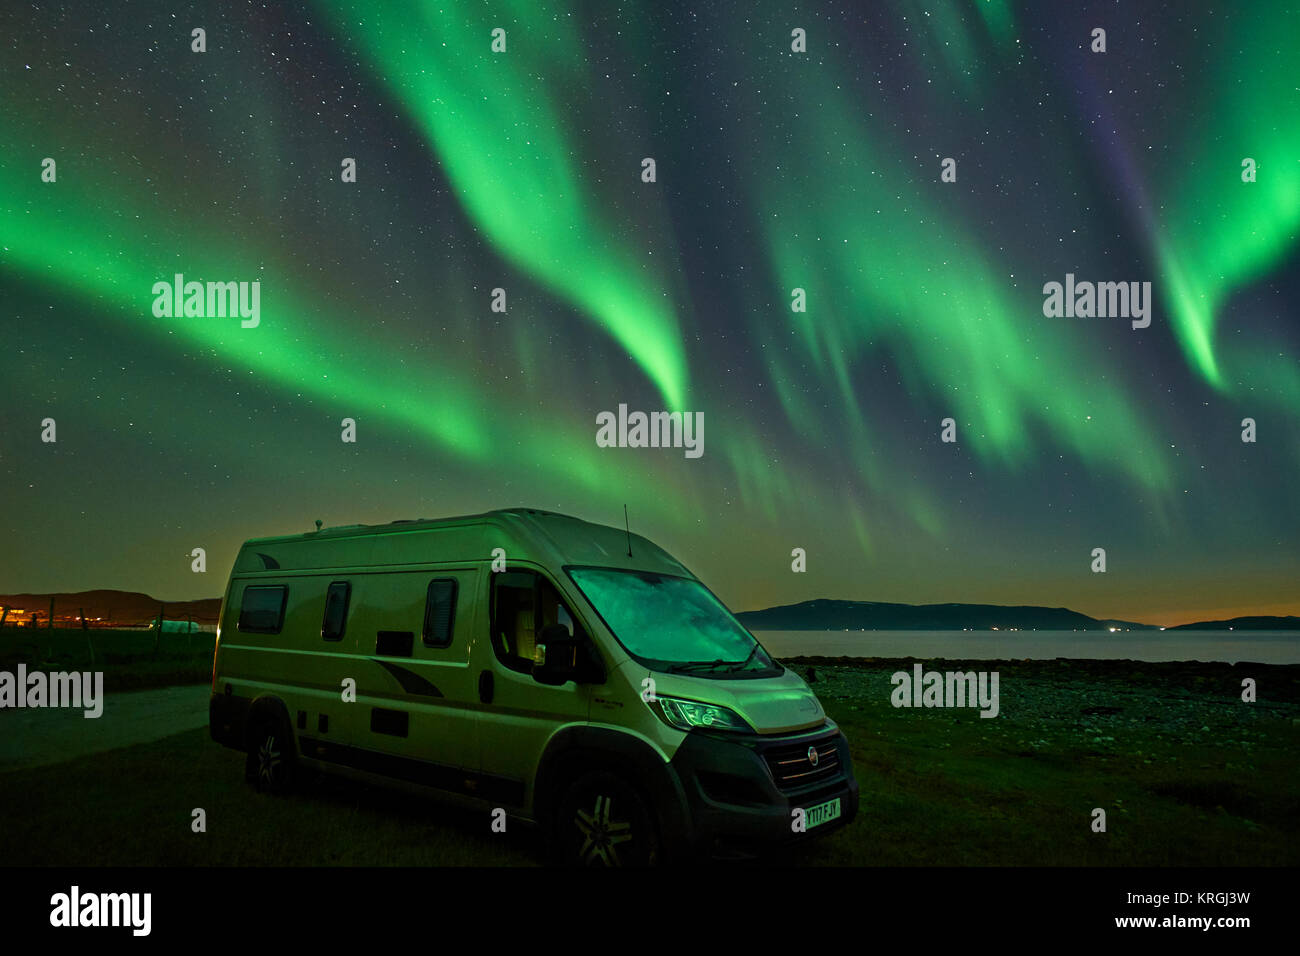 Campervan and Aurora Borealis, Northern Lights, Russelv, Lyngen, Troms, Norway Stock Photo